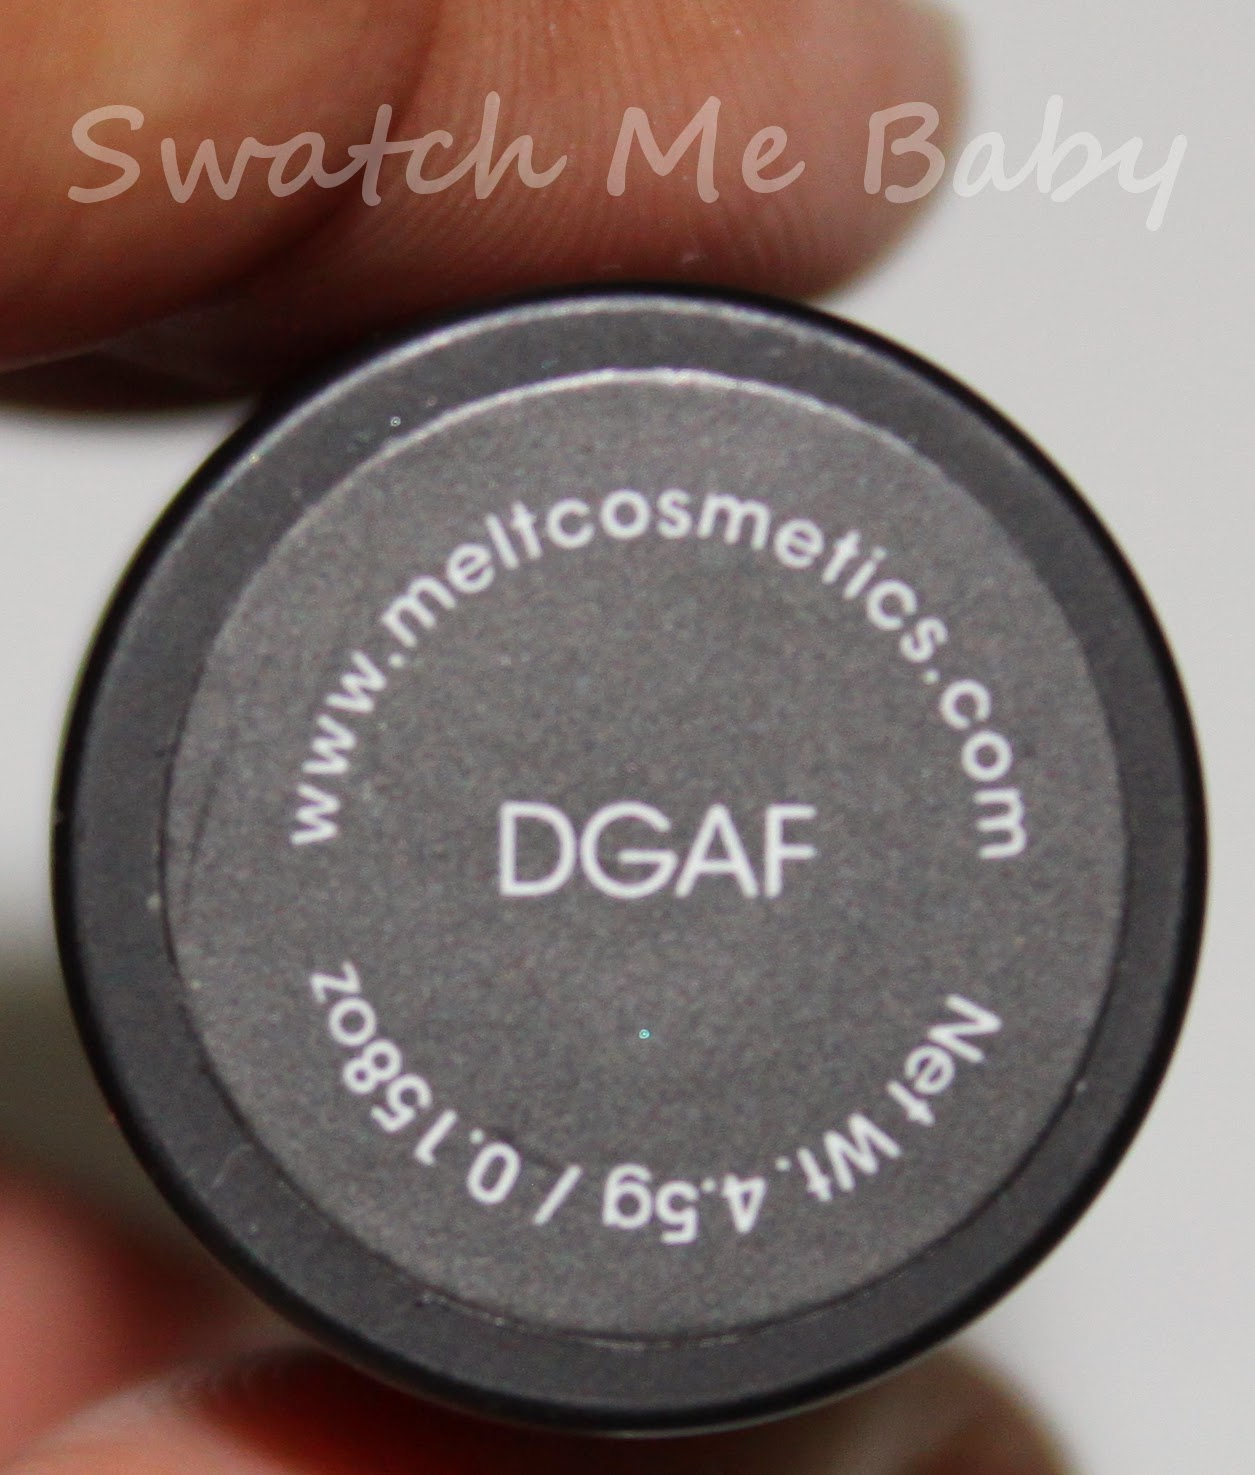 Melt Lipstick in DGAF Label